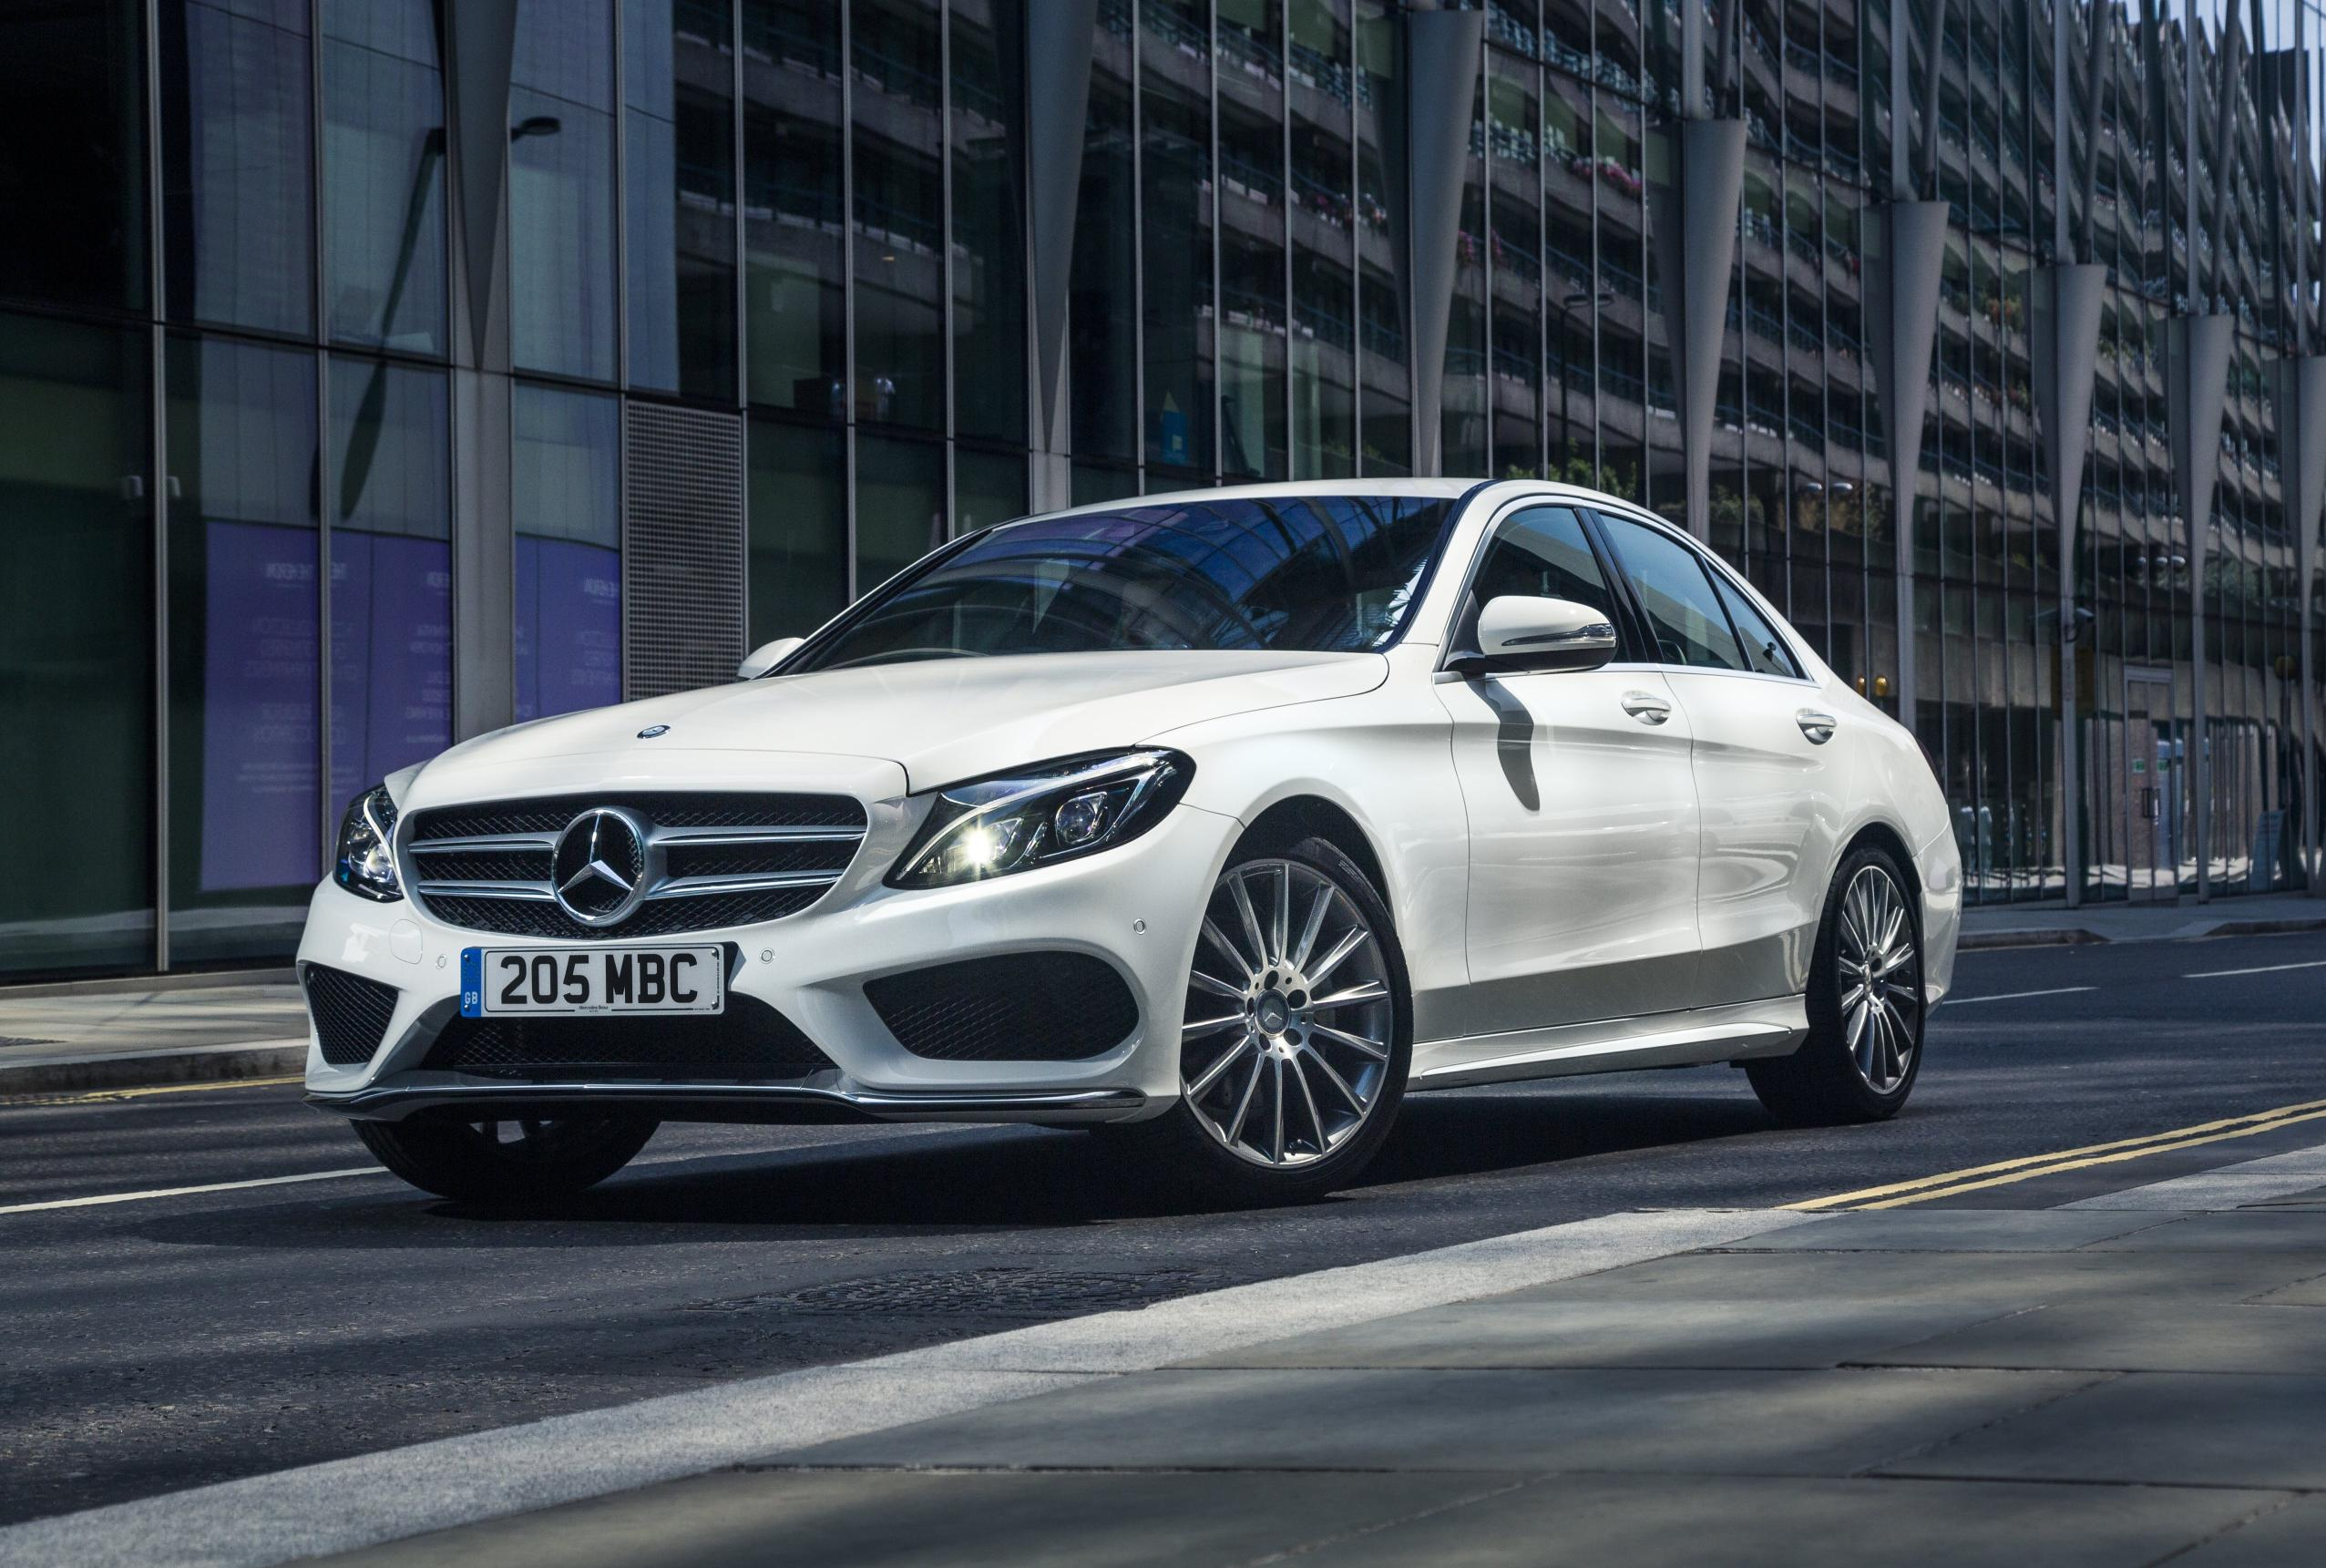 2015 mercedes benz c class launch date revealed for Mercedes benz c classes